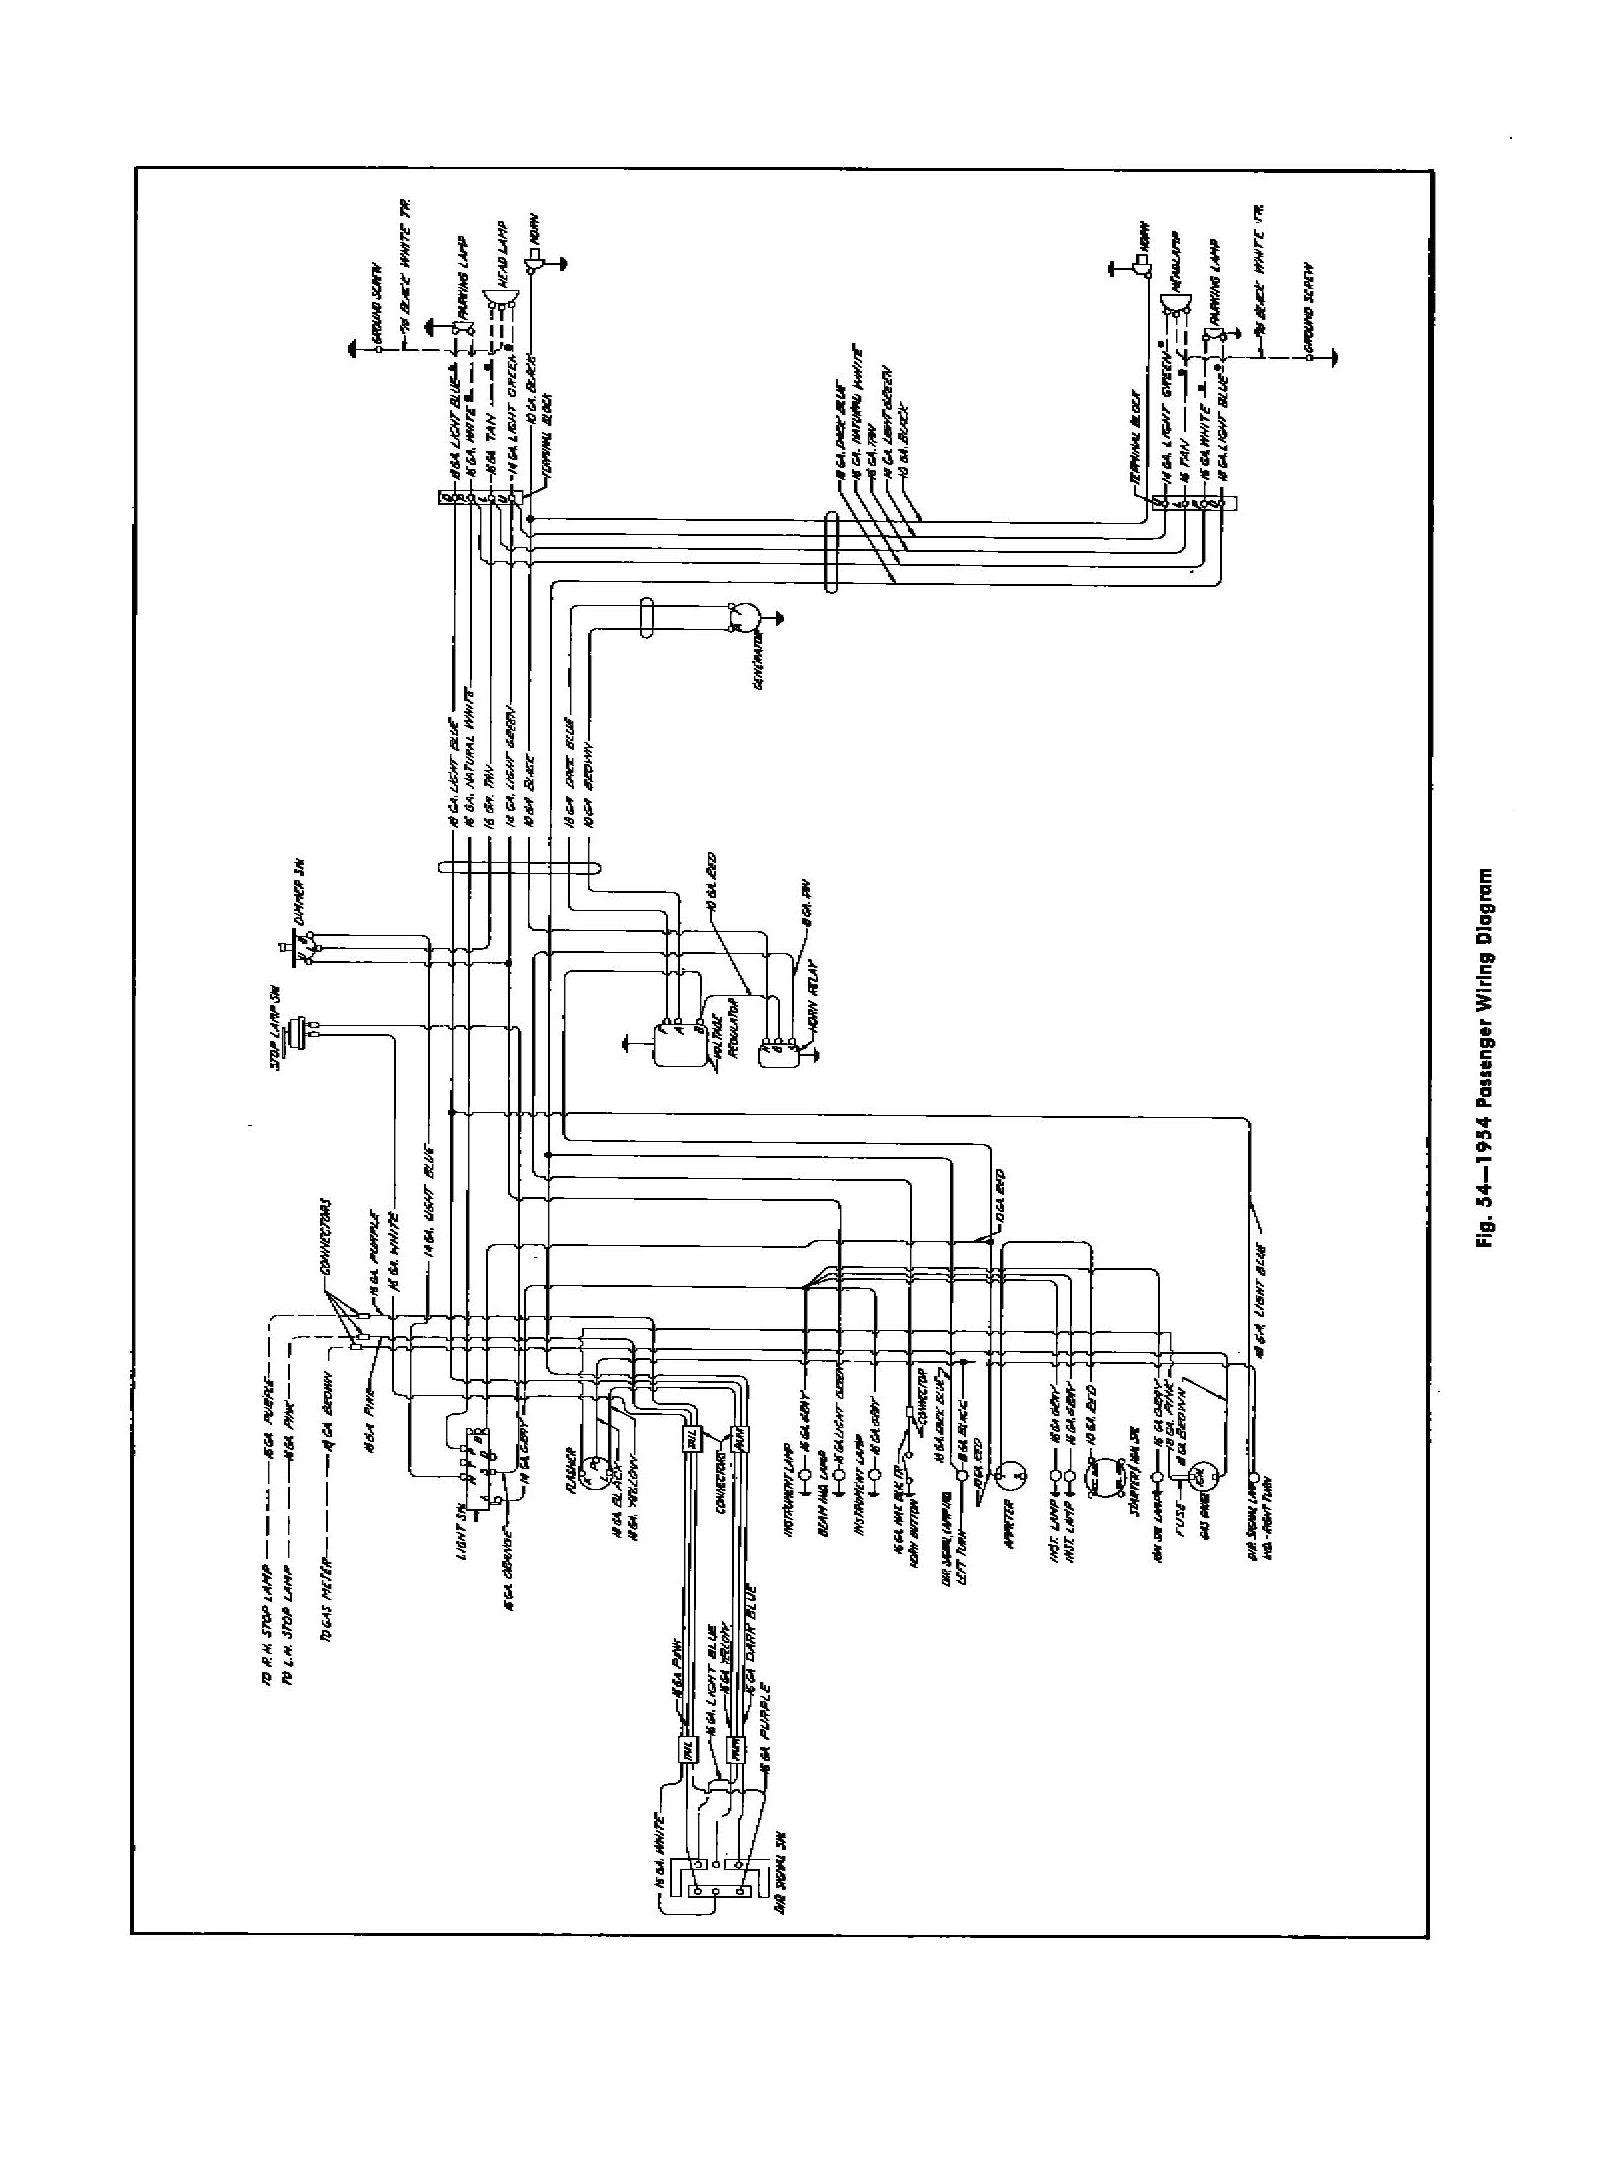 Chevy Truck Wiring Harness Diagram Free